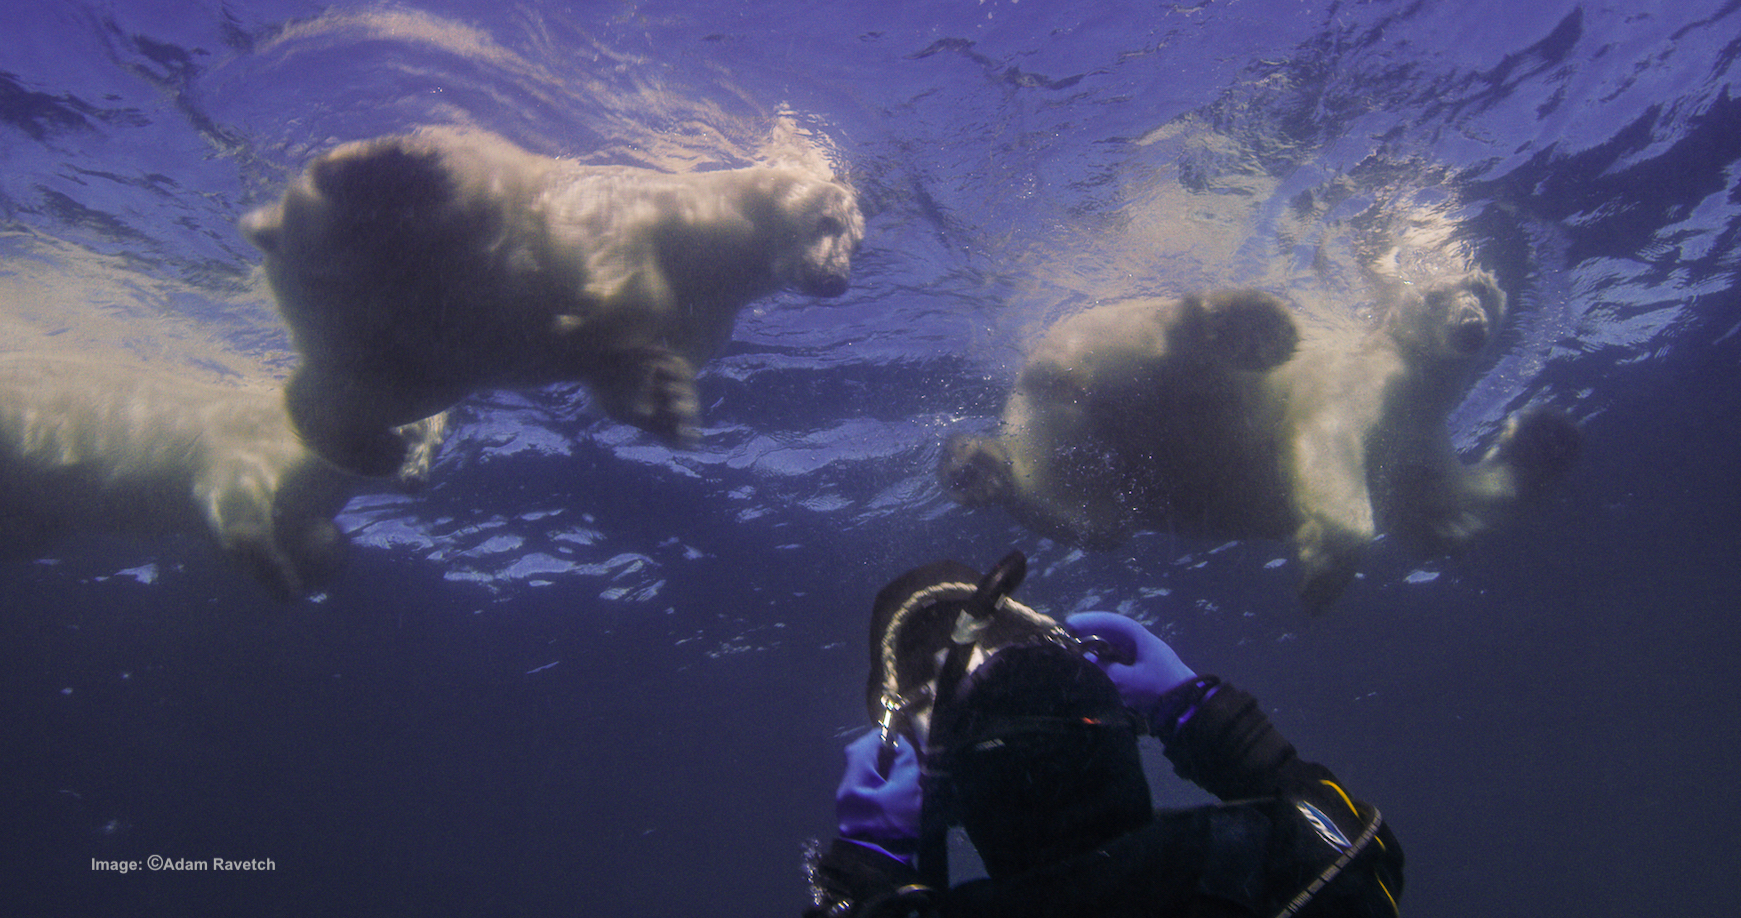 YES, THOSE ARE WILD POLAR BEAR SWIMMING ABOVE THE HEAD OF AMOS NACHOUM AS HE PHOTOGRAPHS THEM IN OPEN WATER OFF THE COAST OF ARCTIC CANADA. FILMMAKER ADAM RAVETCH IS FILMING HIM. IMAGE BY ADAM RAVETCH.